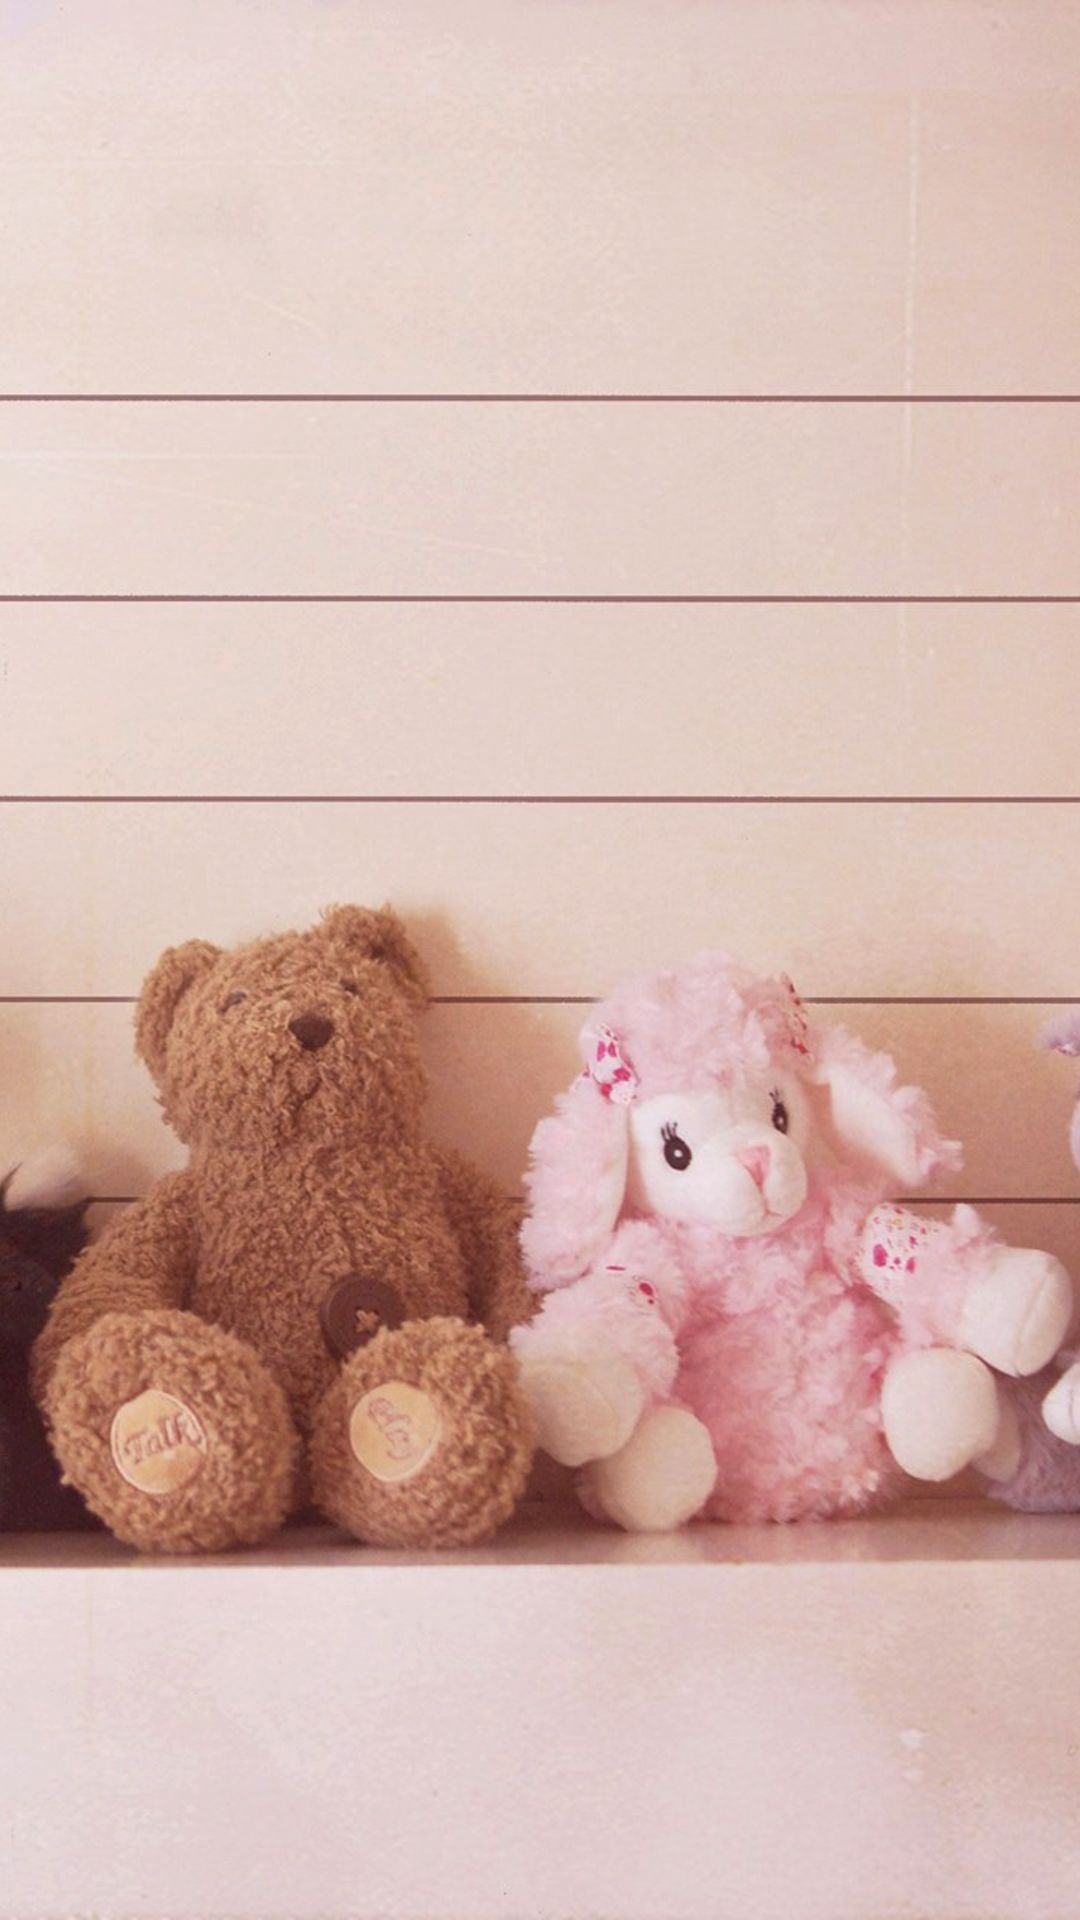 Cute Teddy Bear Couple Iphone Android Mobile Wallpaper